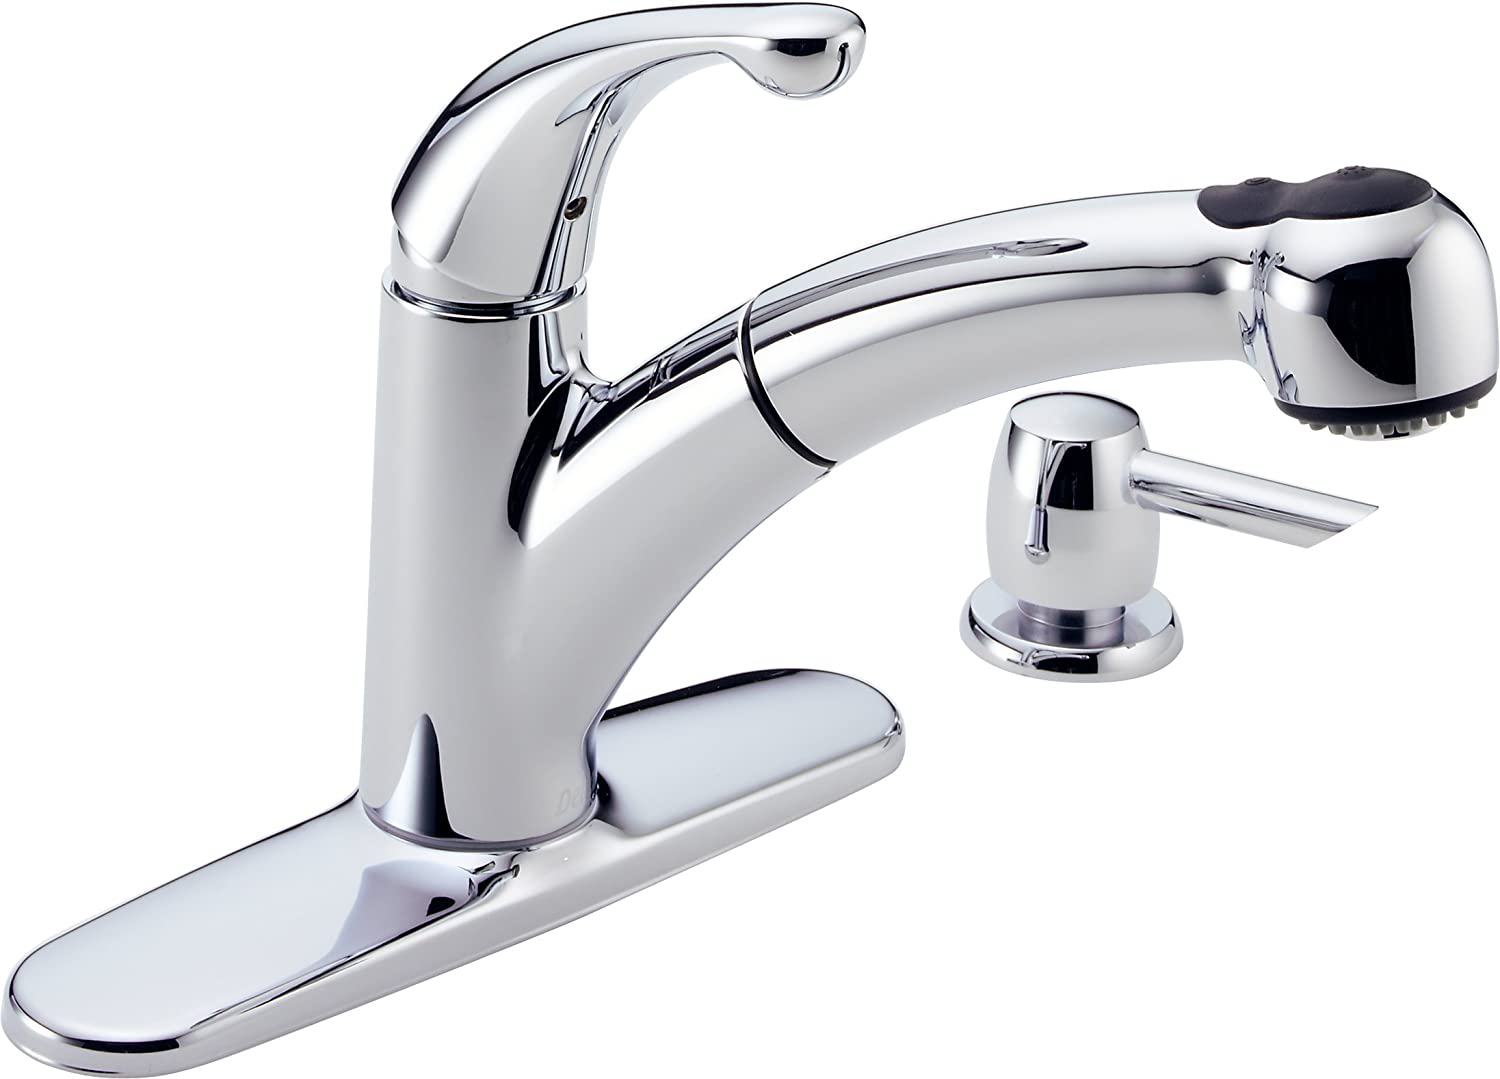 Delta 467 SD DST Palo Single Handle Pull Out Kitchen Faucet With Soap  Dispenser, Chrome   Touch On Kitchen Sink Faucets   Amazon.com